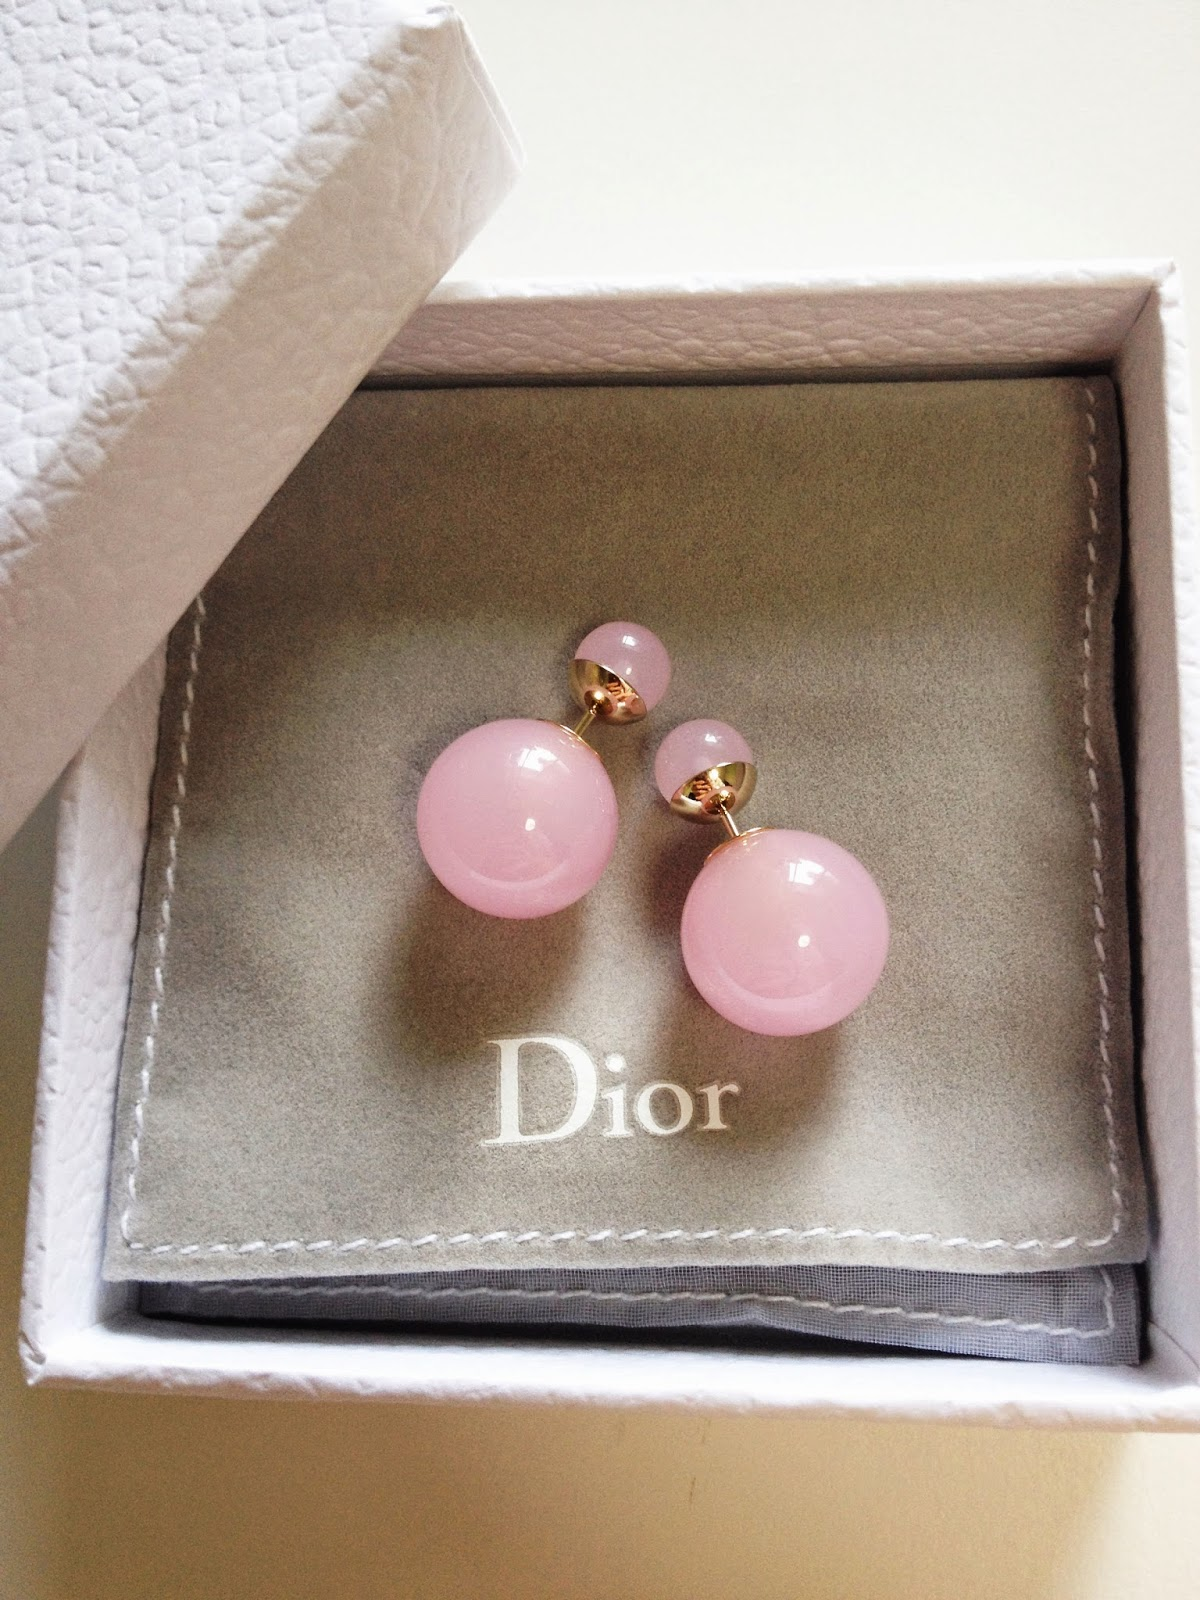 Dior Earring Review